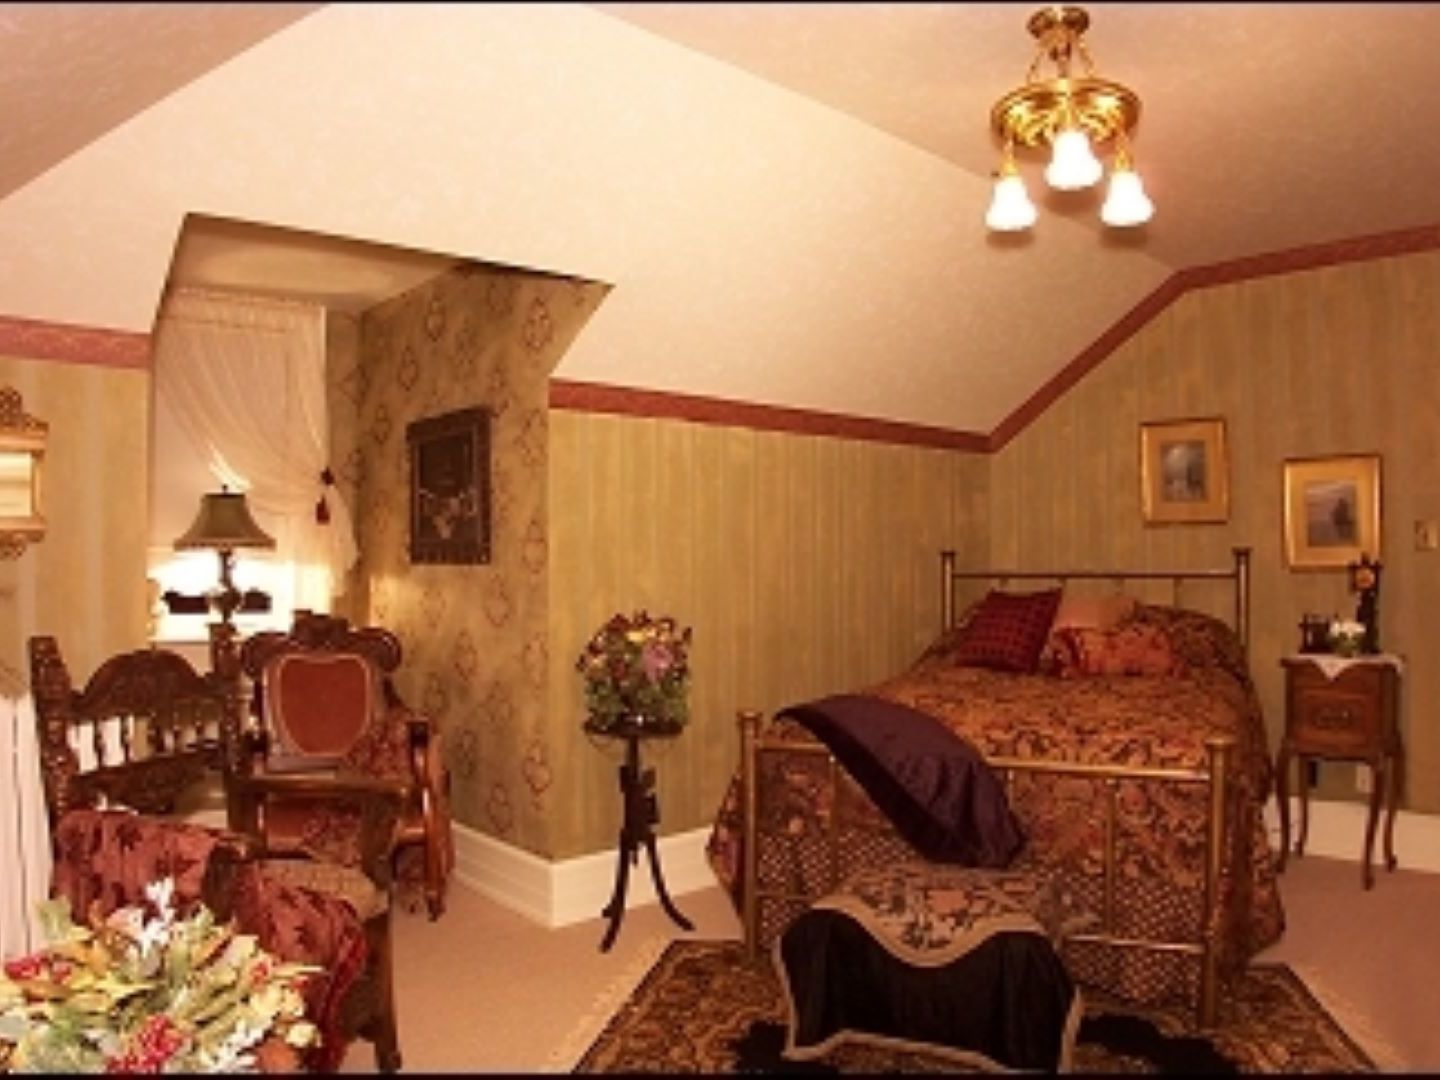 Traverse City Bed and Breakfast